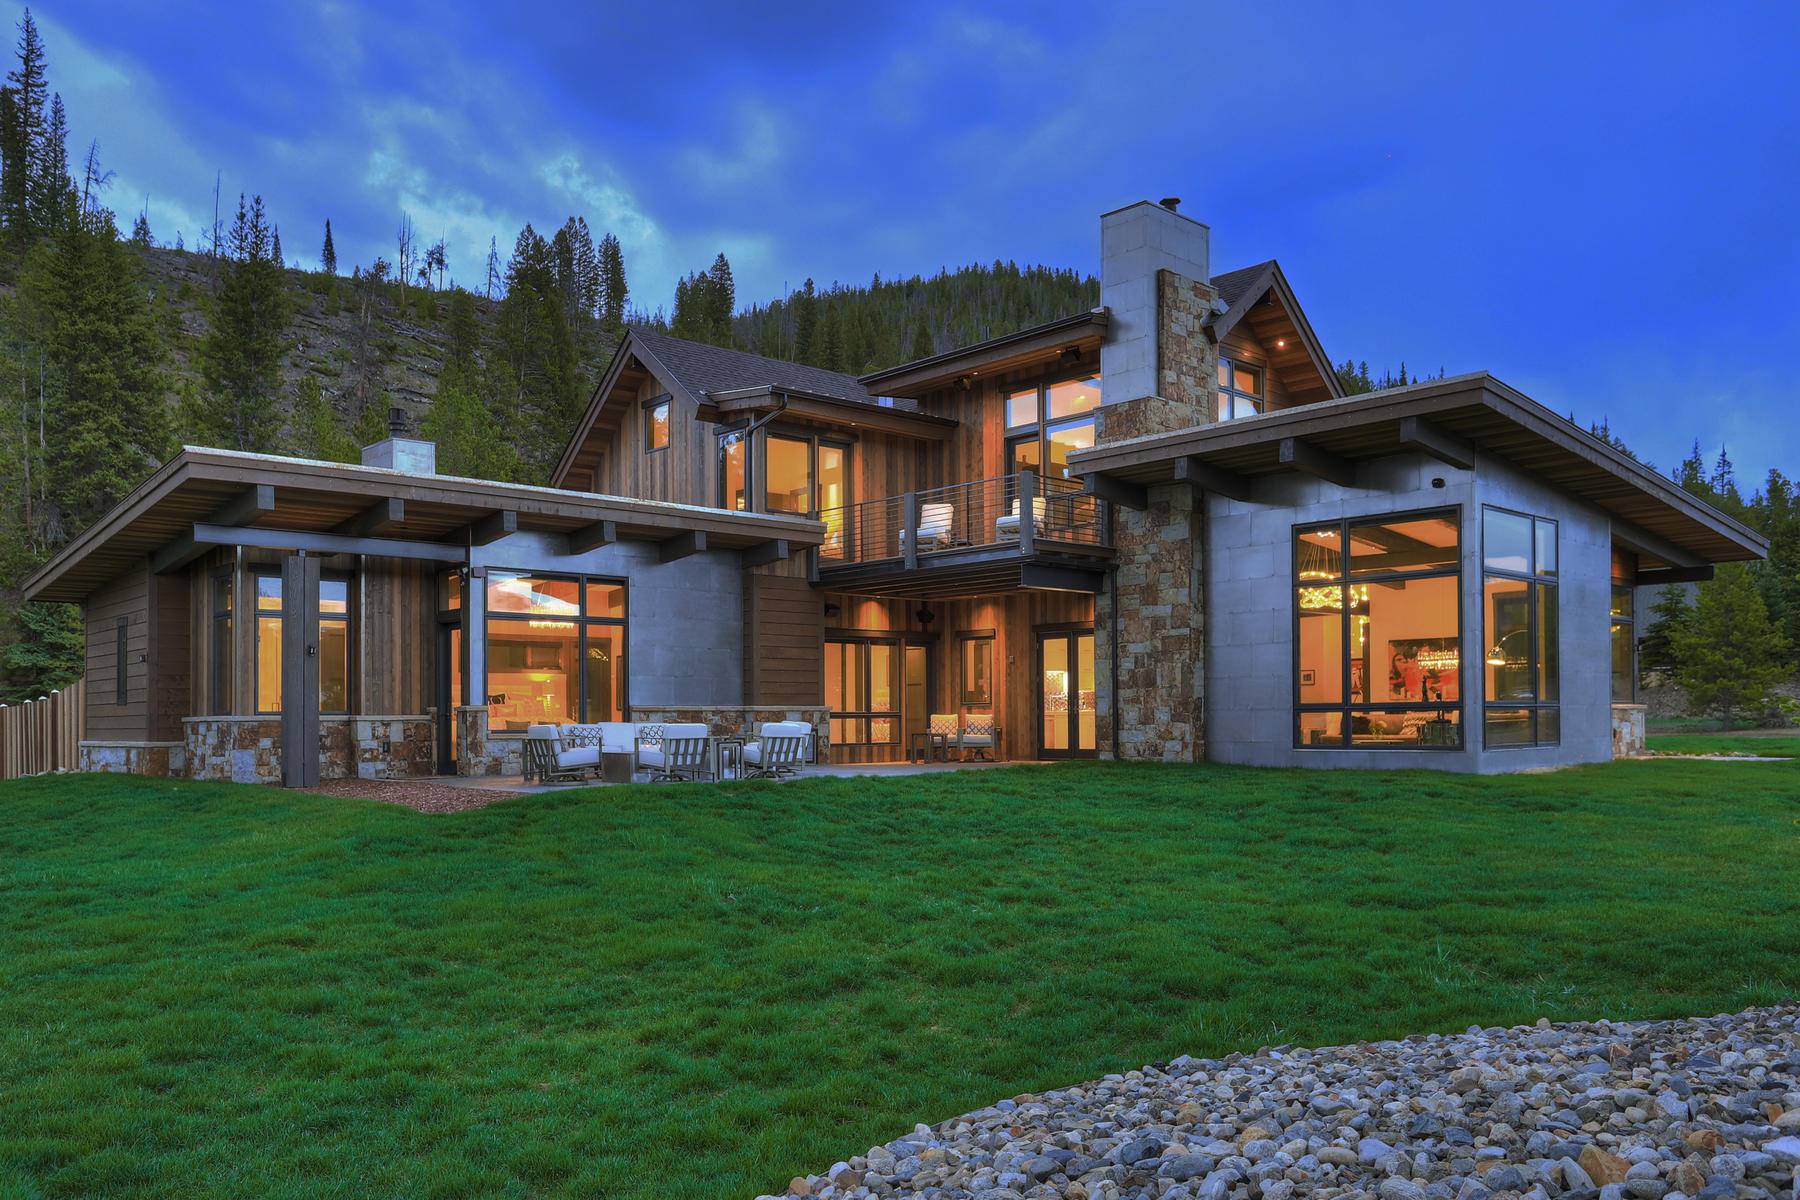 Single Family Homes for Sale at Unmatched Contemporary Custom Home 381 Revett Drive Breckenridge, Colorado 80424 United States